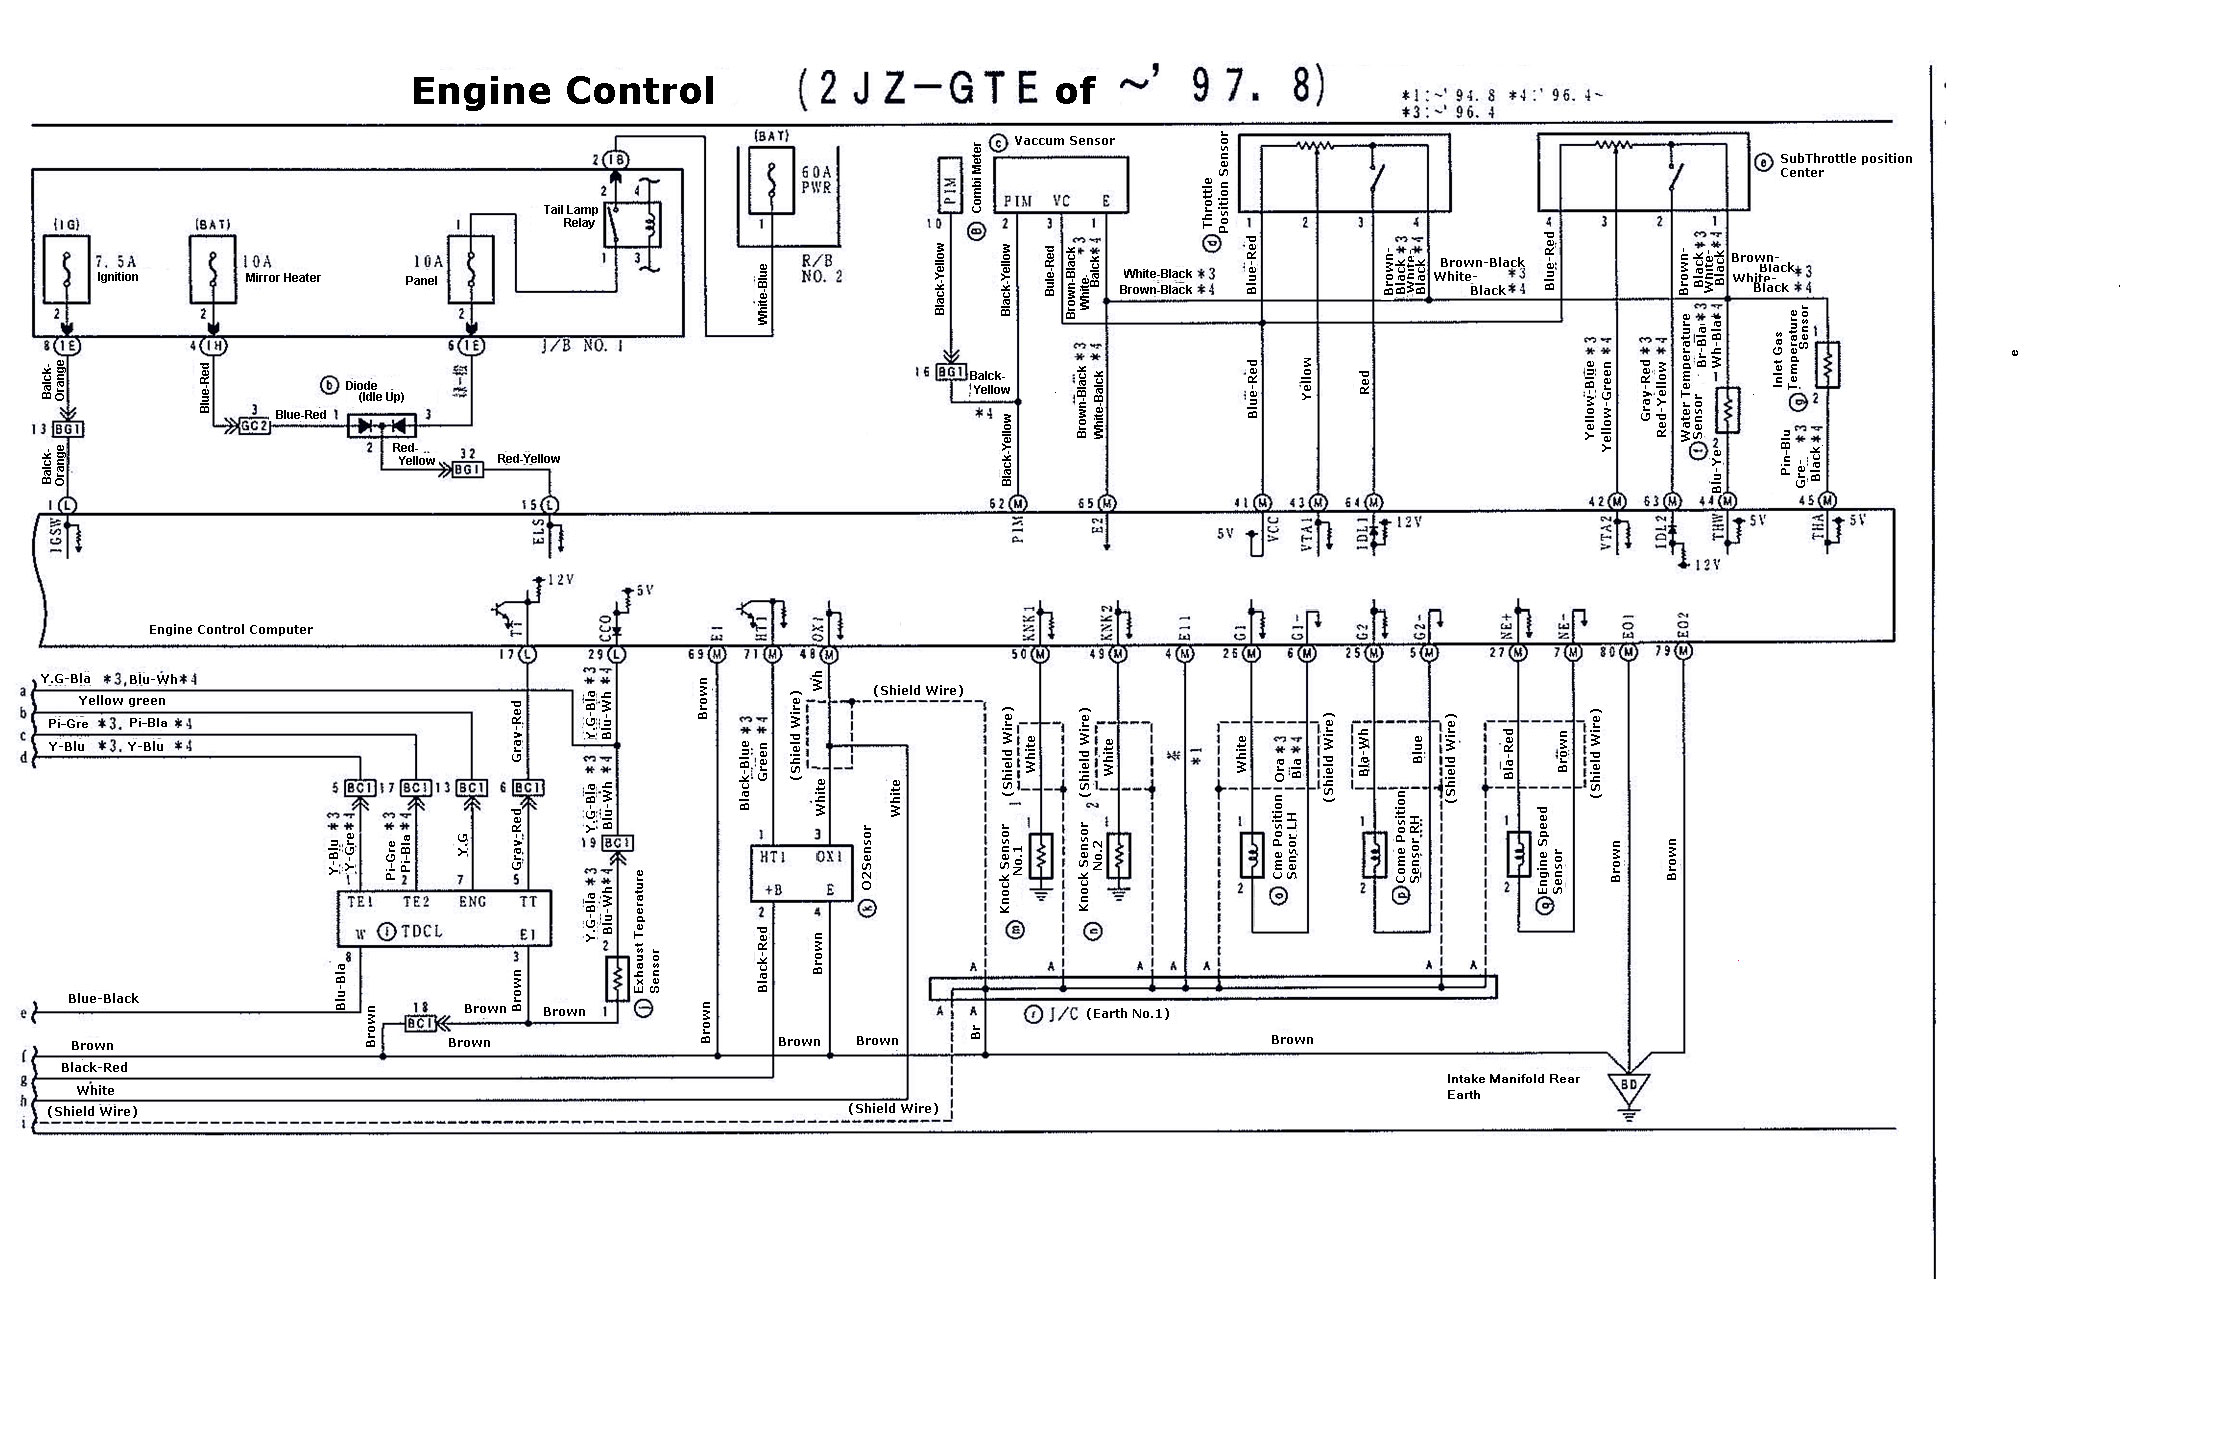 supra 2jzgte vvti wiring diagrams (97 8 02) 2jzgarage big 3 wiring diagrams disclaimer i don't take any responsibility for these diagrams, these are referenced off 2 different diagrams i have of the 2jzgte vvti and some are in